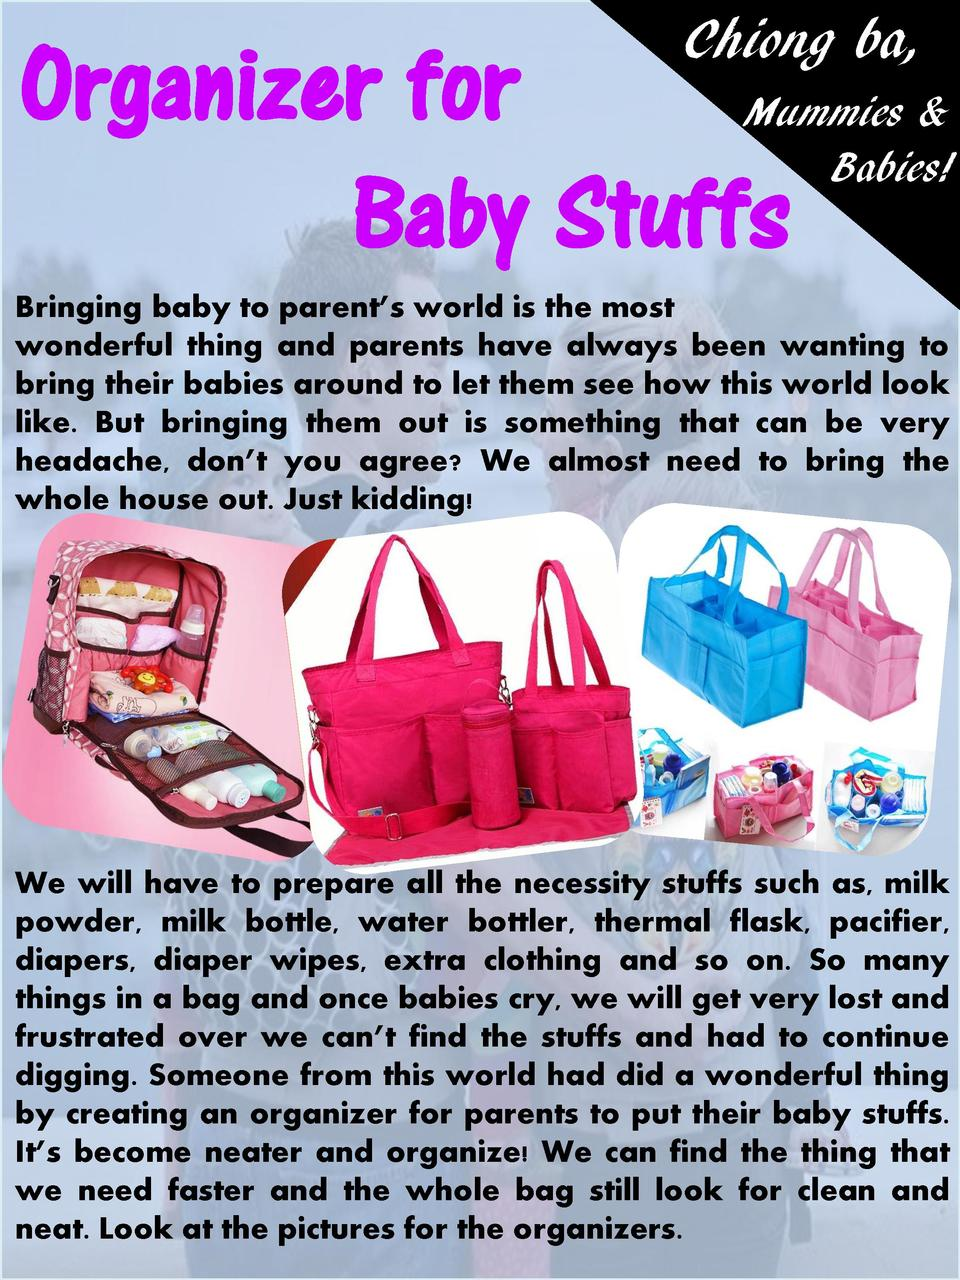 Chiong ba,  Organizer for Mummies   Baby Stuffs  Babies   Bringing baby to parent   s world is the most wonderful thing an...